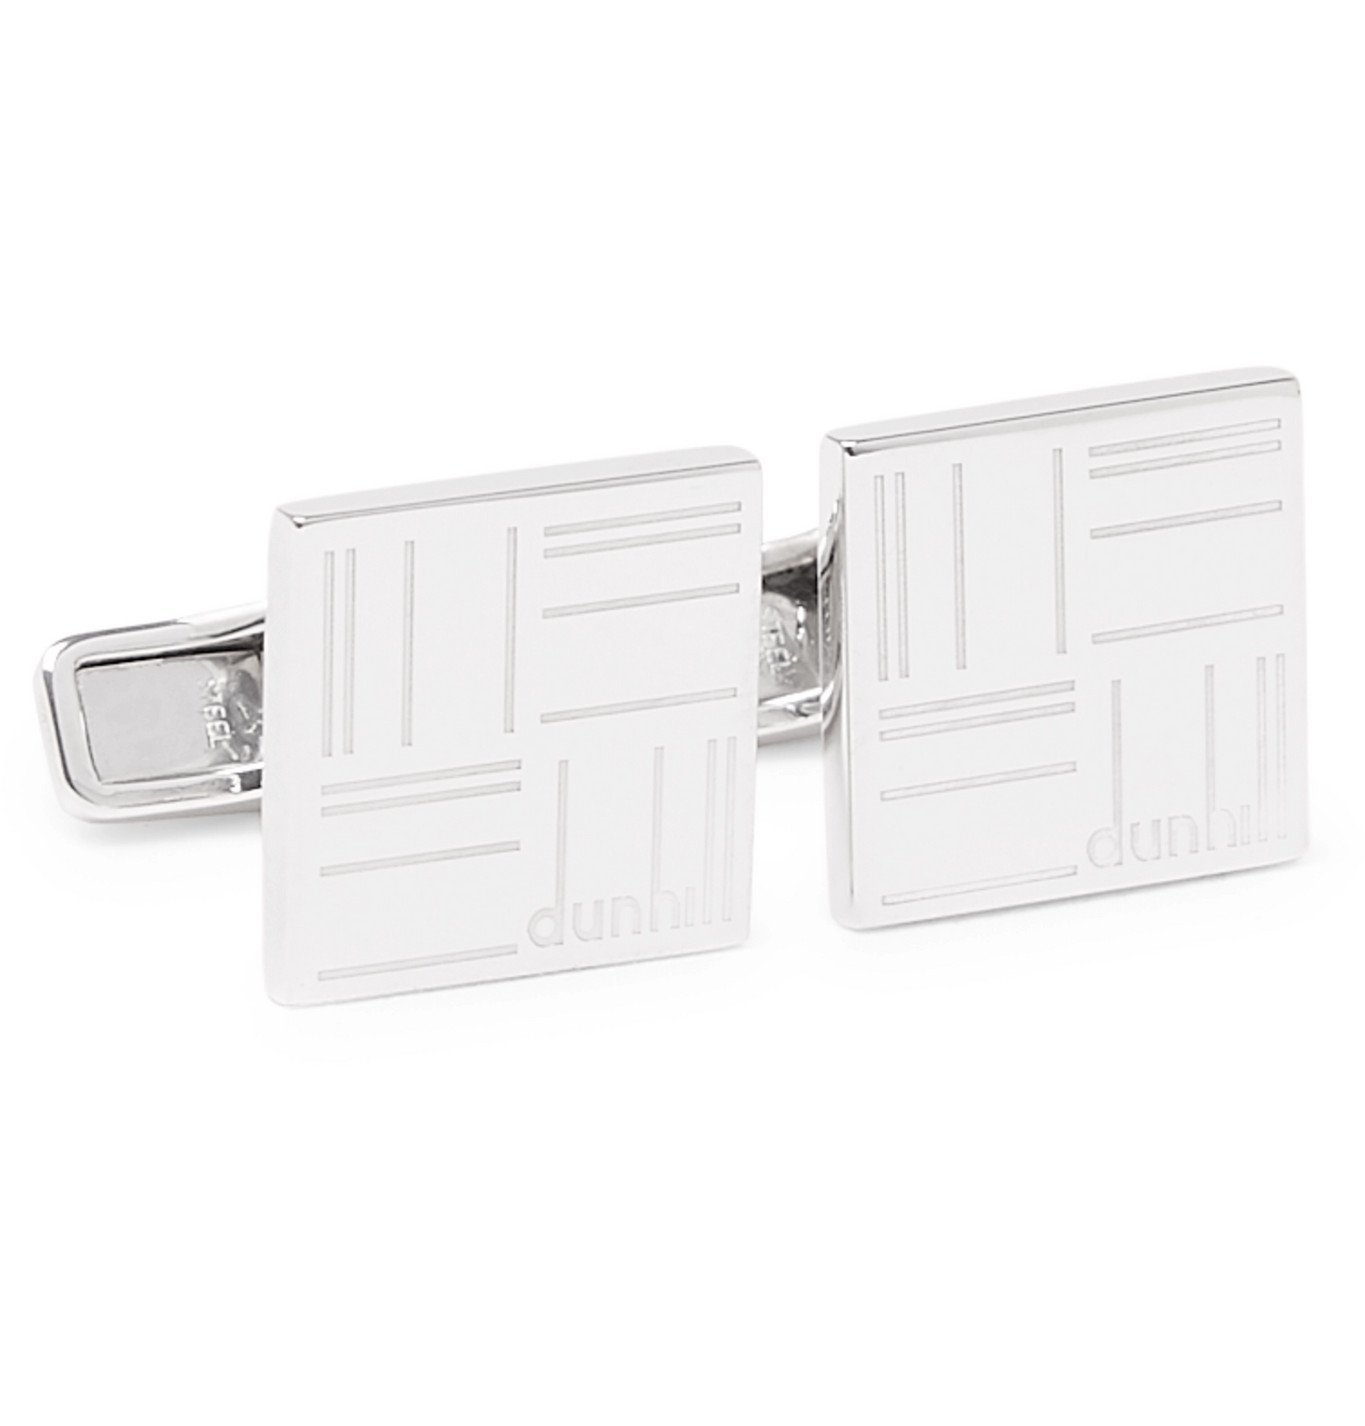 Dunhill - Logo-Engraved Sterling Silver Cufflinks - Silver